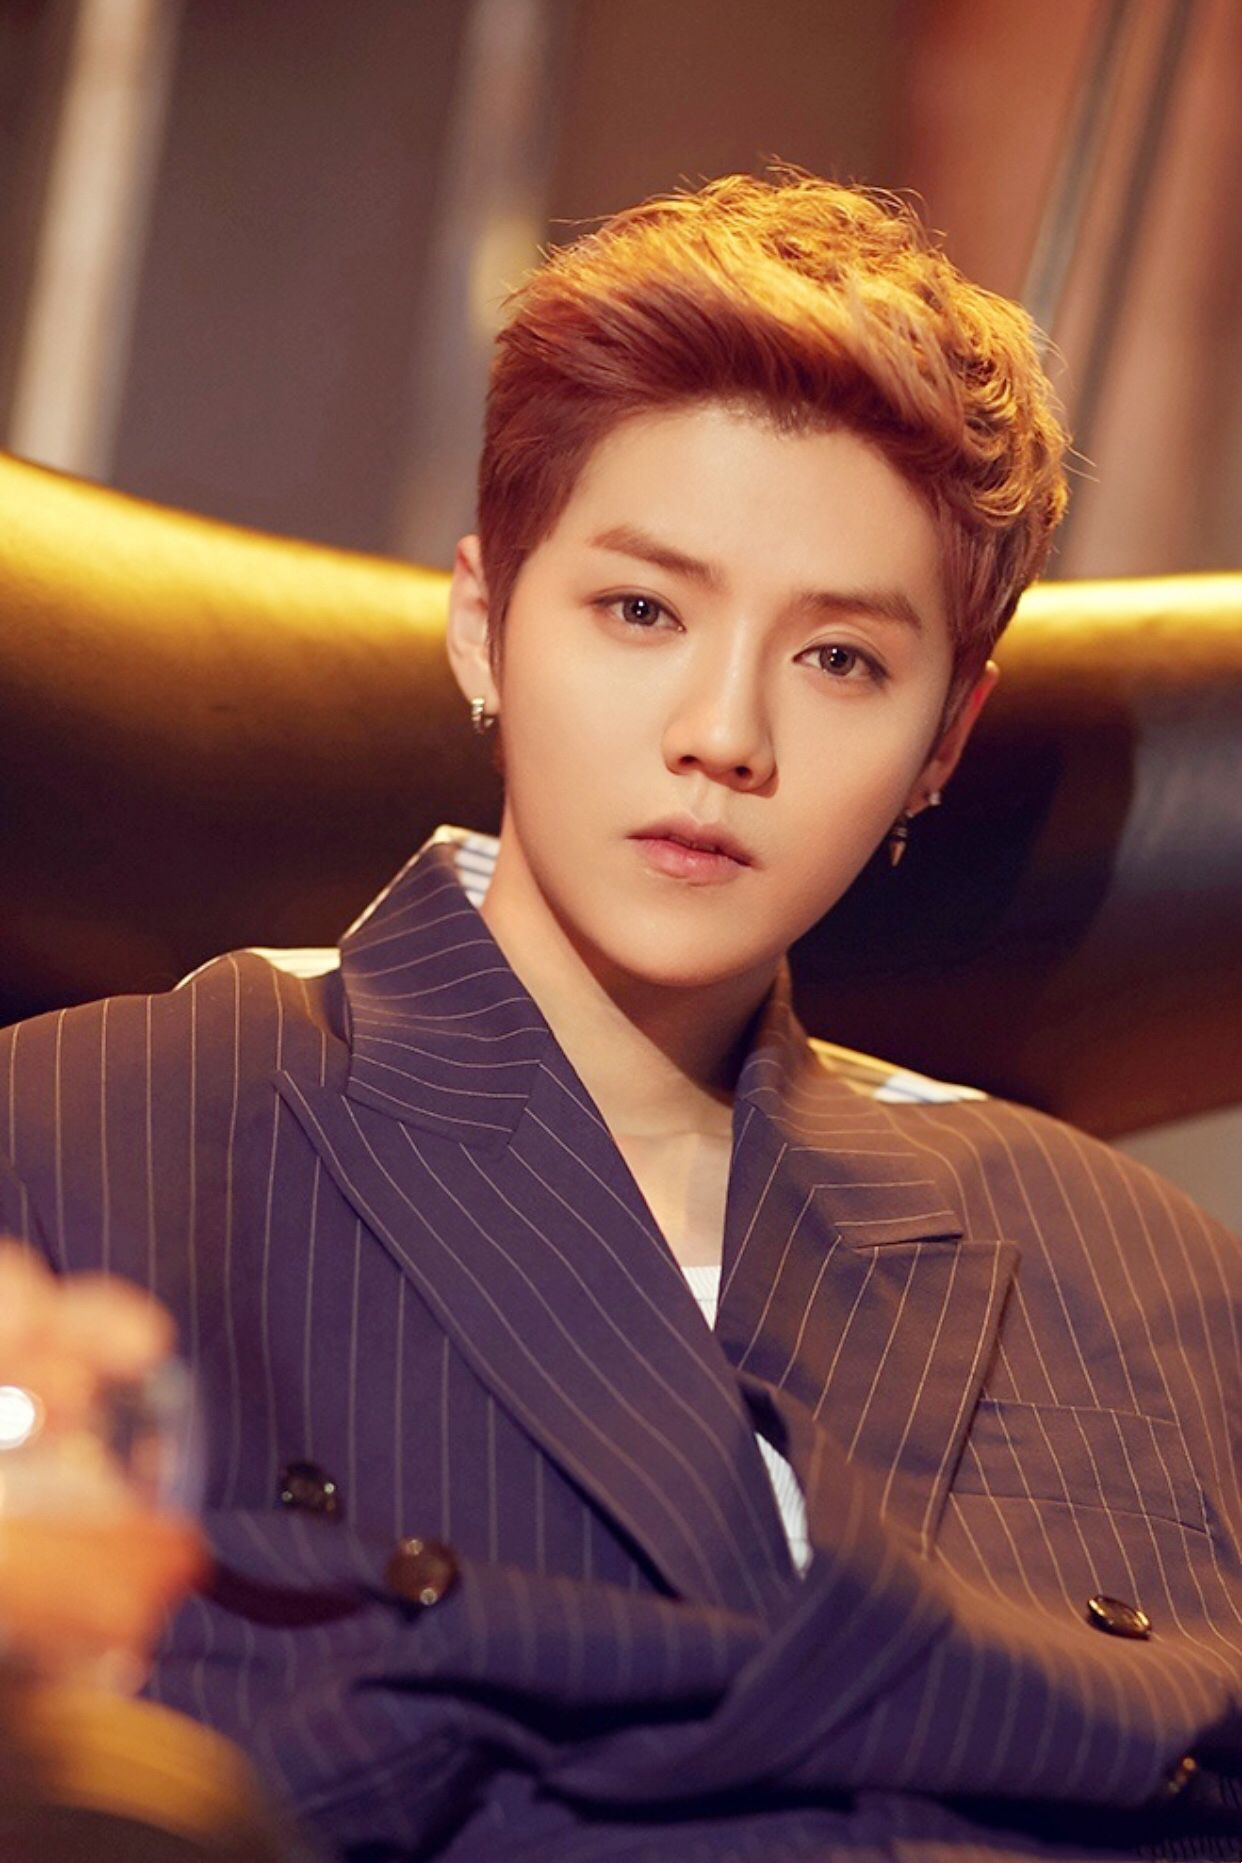 Luhan 鹿晗 New Release On Call Publicity Photo Cantores Lu Han Rapazes Bonitos